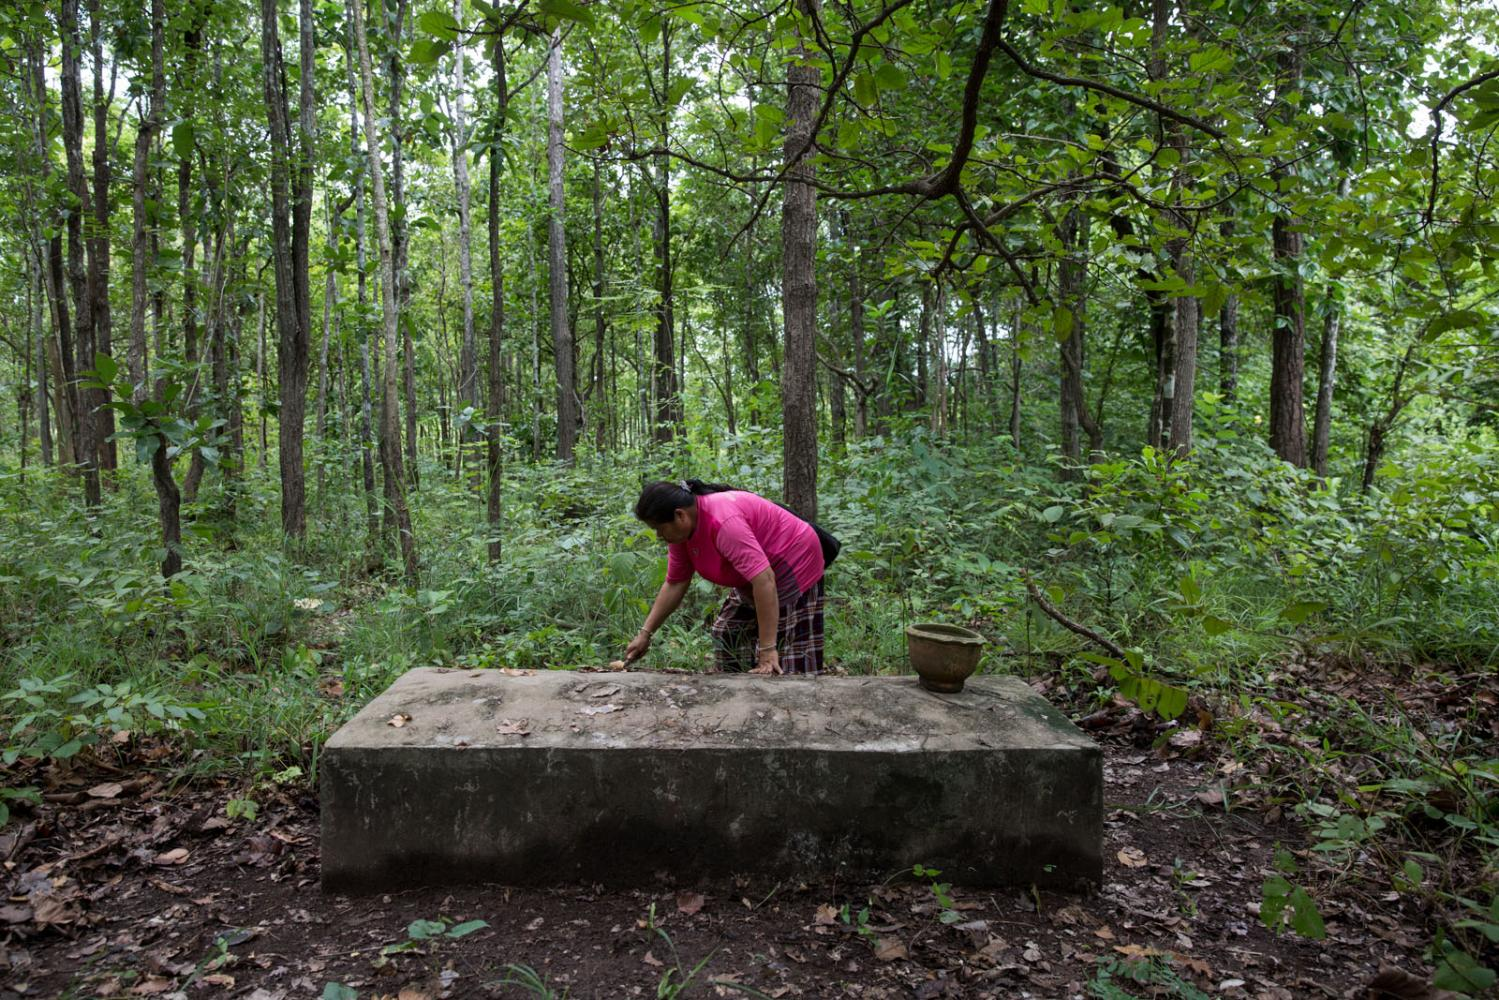 A women tidies the grave of her husband who was shot-dead by a gunman in the early 1990's during an on-going struggle against a stone mine. Nong Bua Lam Phu, Thailand.